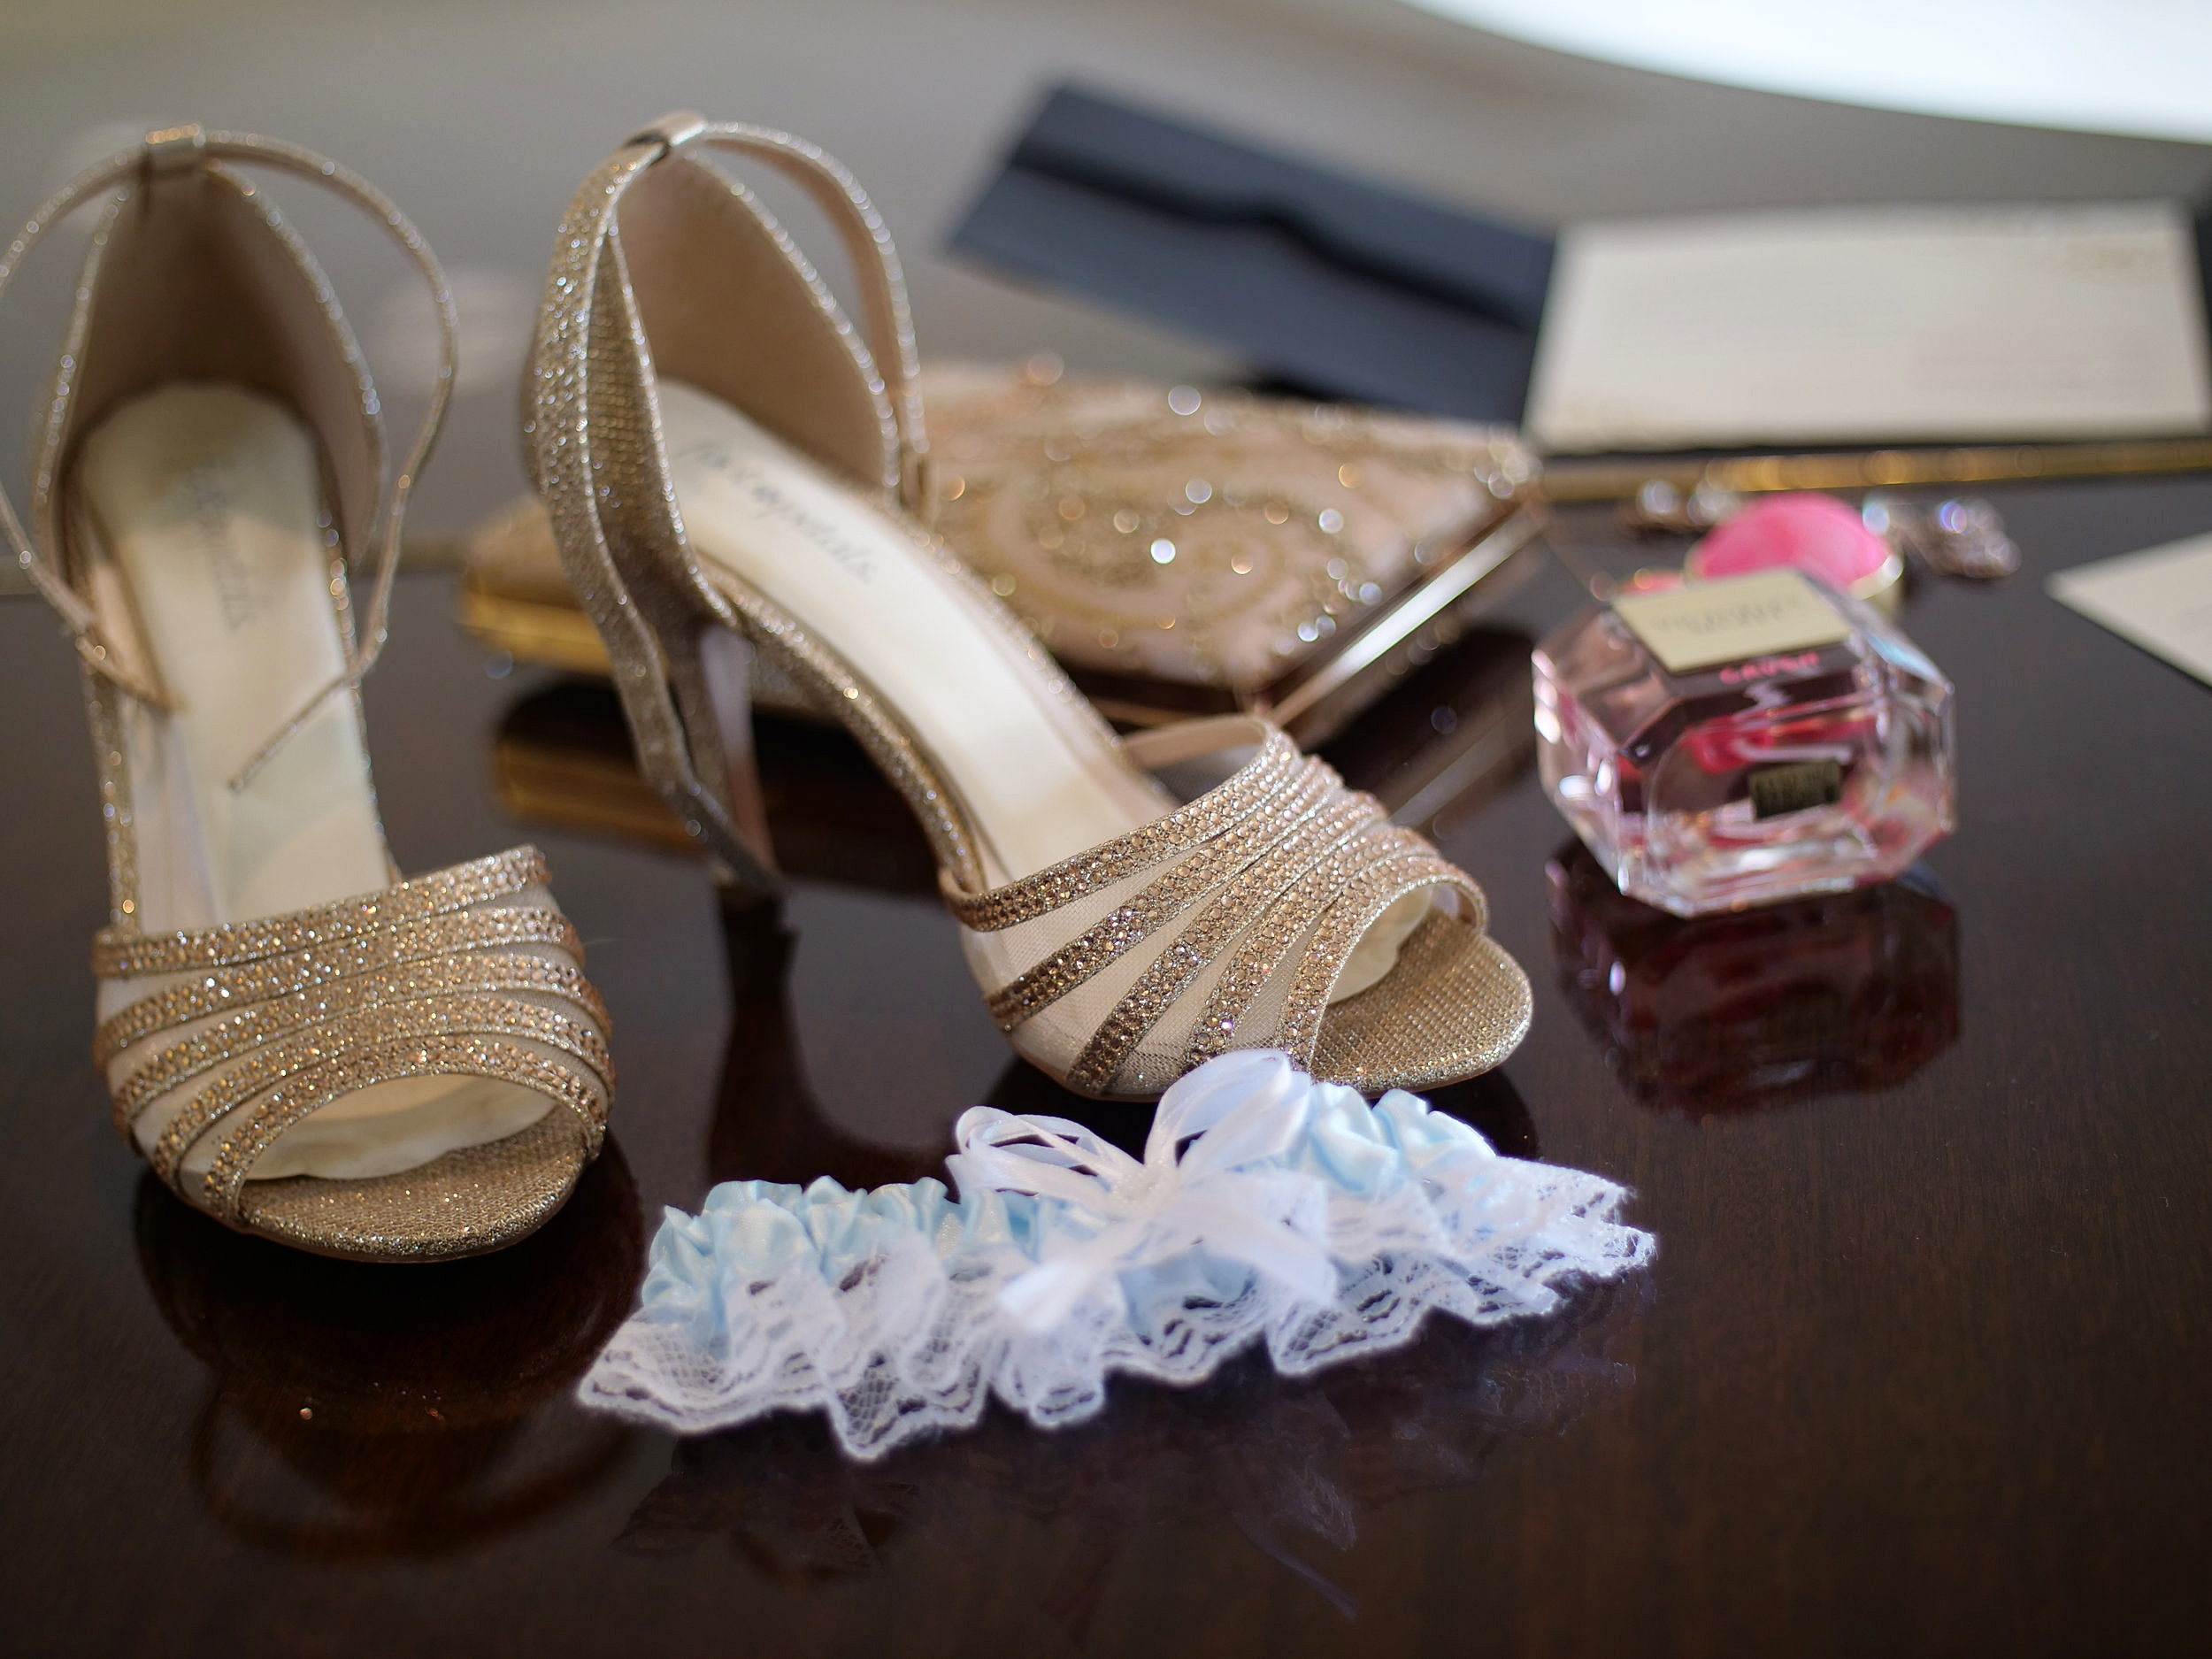 shoes details flat lays videography creative